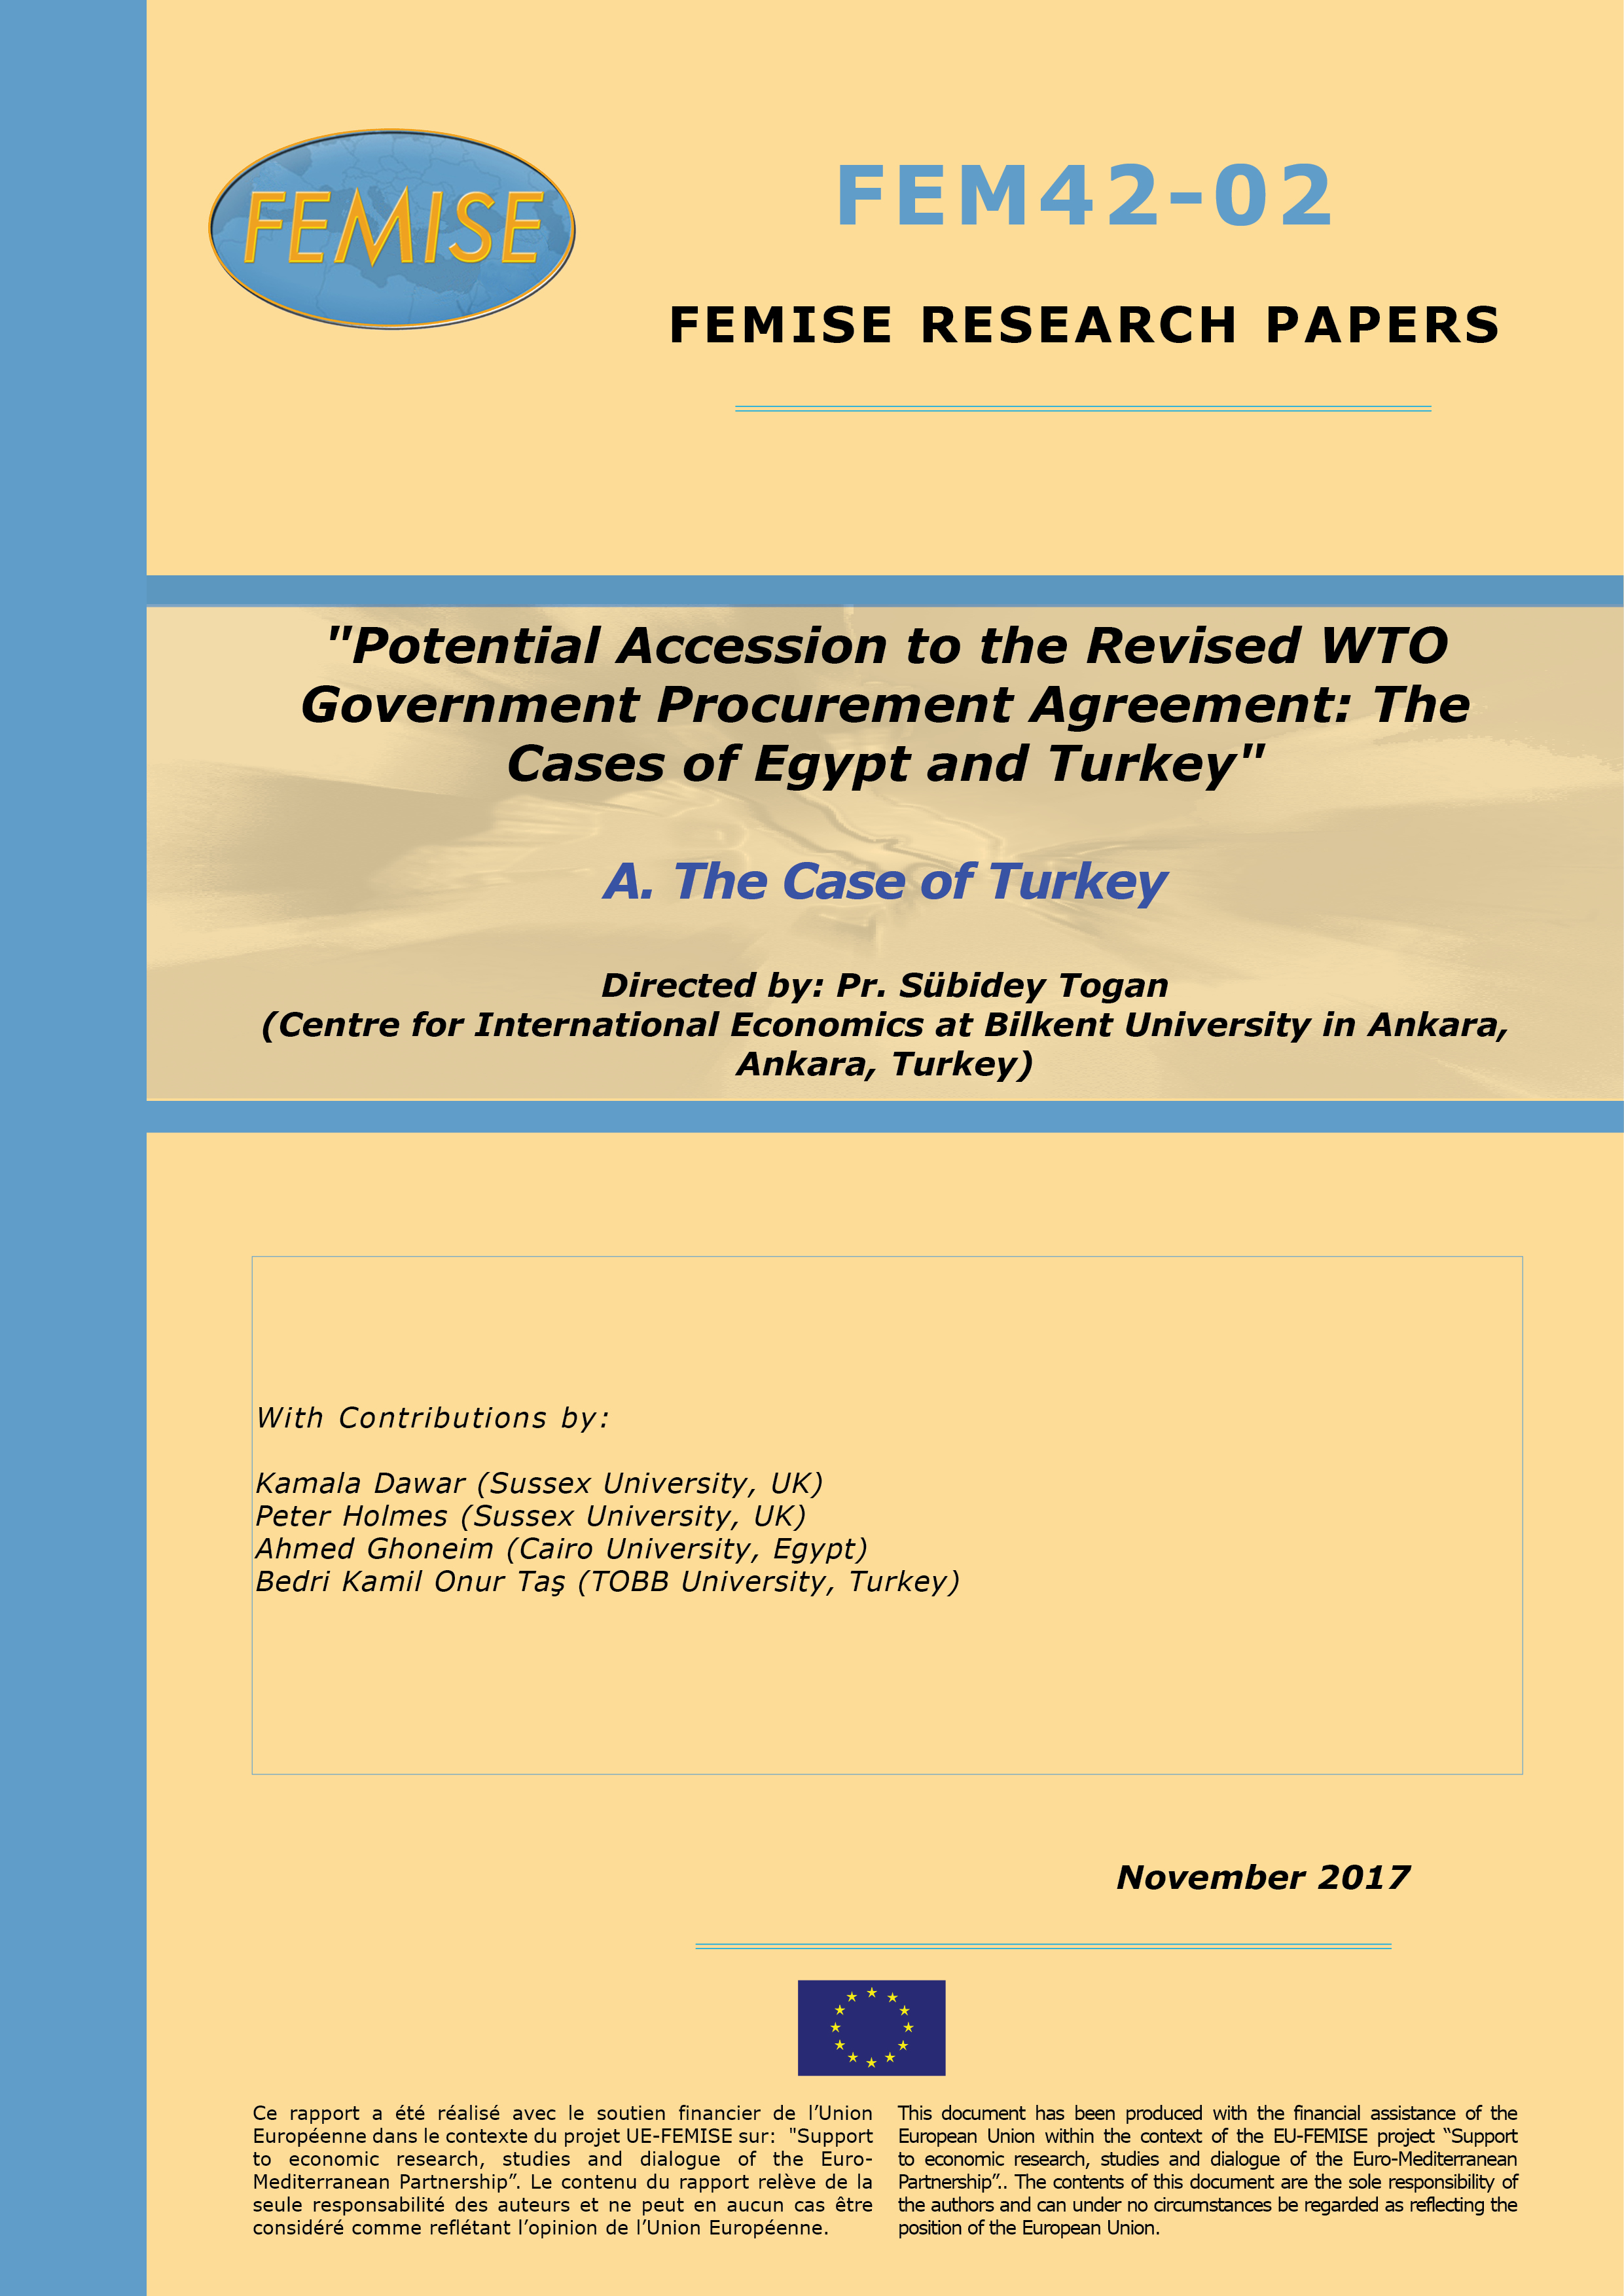 Potential Accession To The Revised Wto Government Procurement